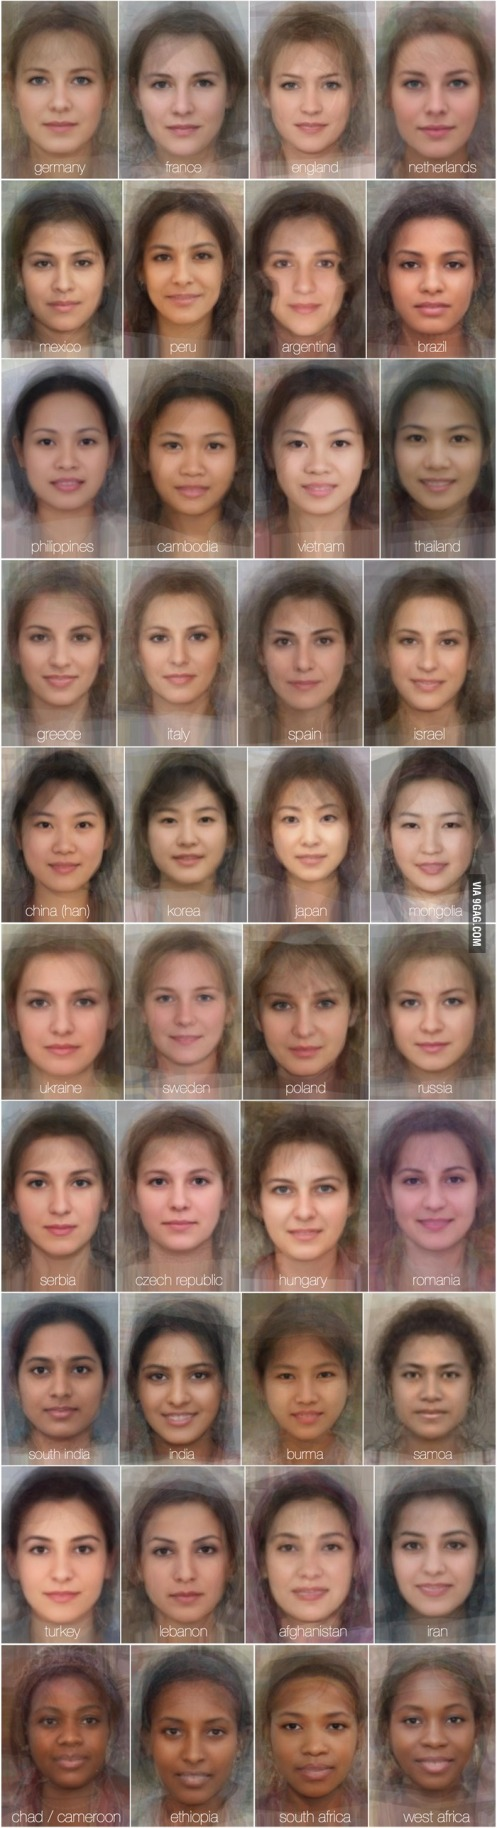 average-faces-of-women-around-the-world